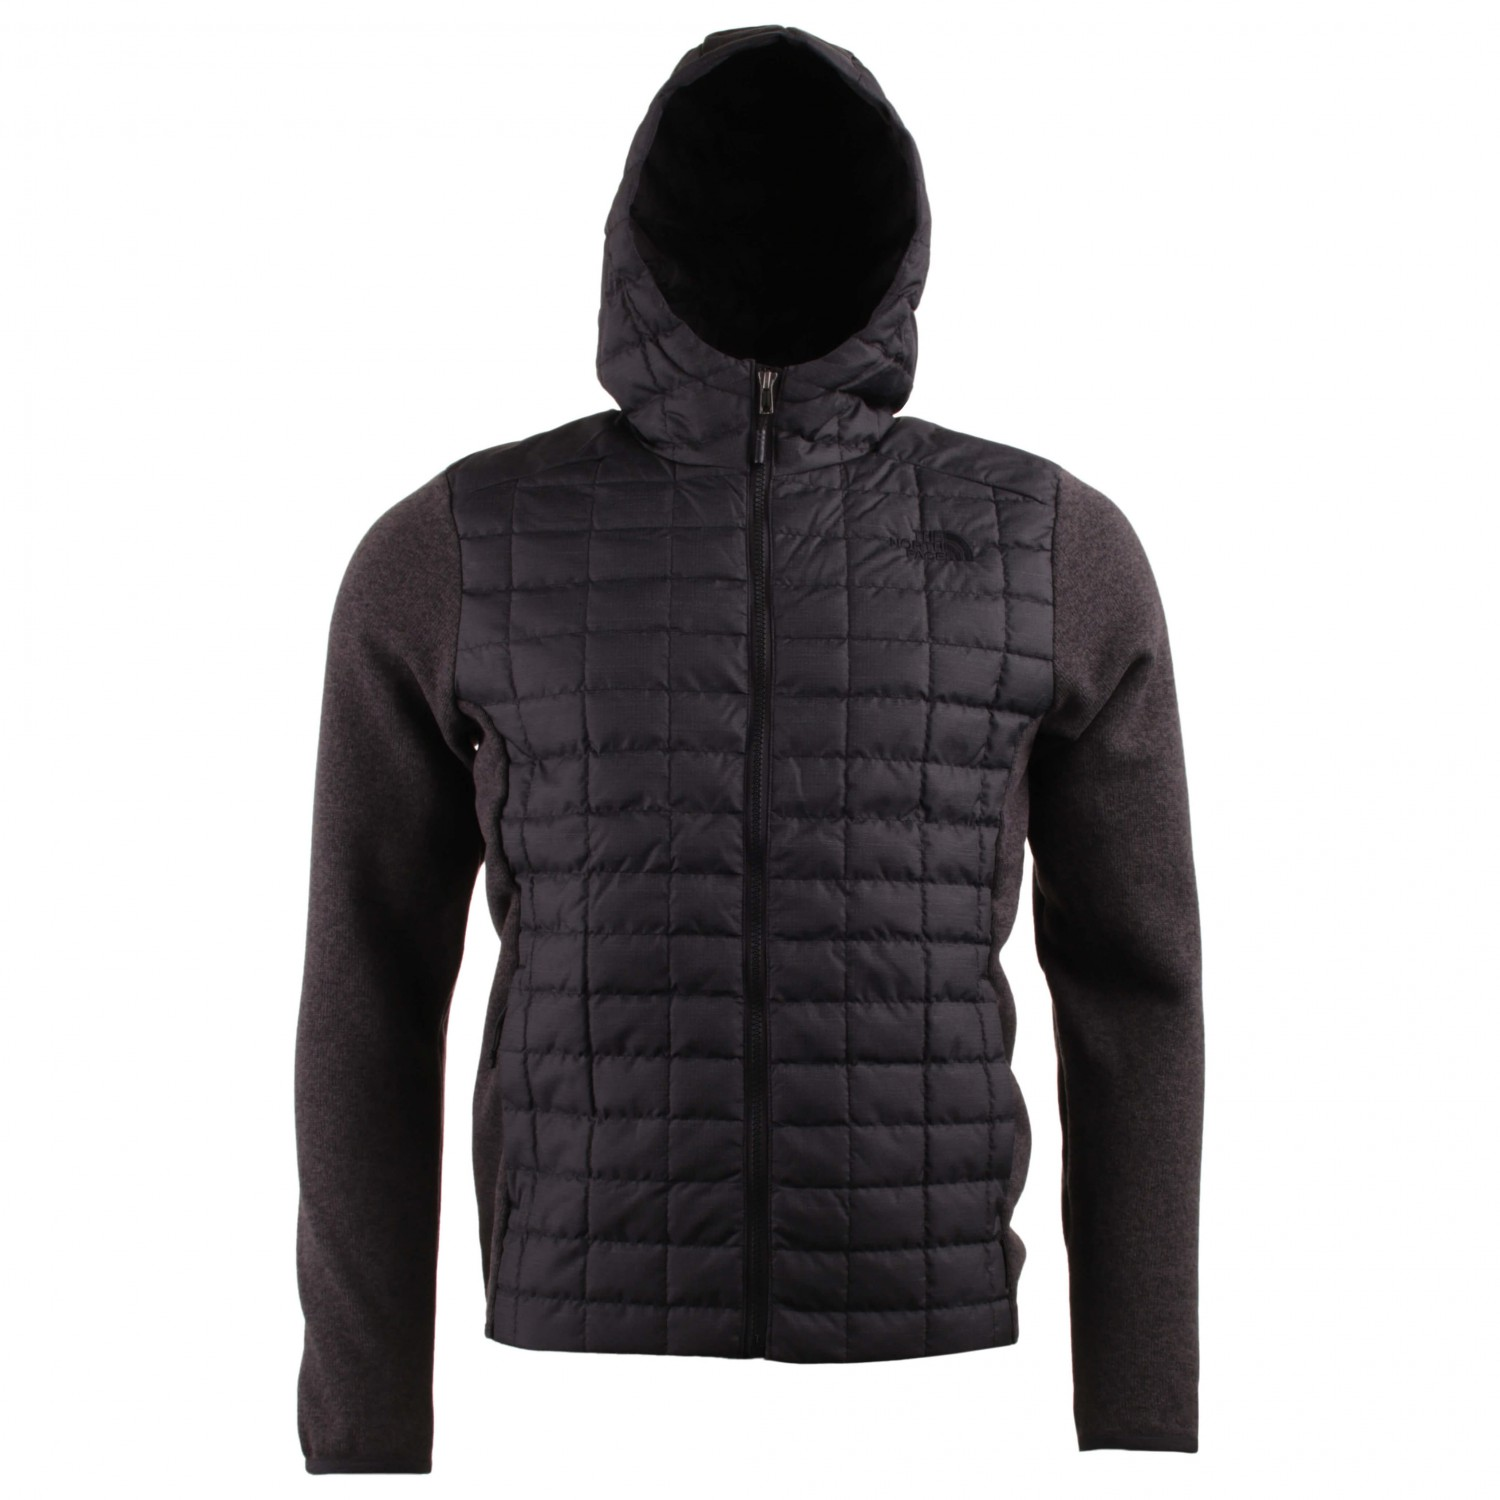 985809697e The North Face - Thermoball Gordon Lyons Hoodie - Veste synthétique ...